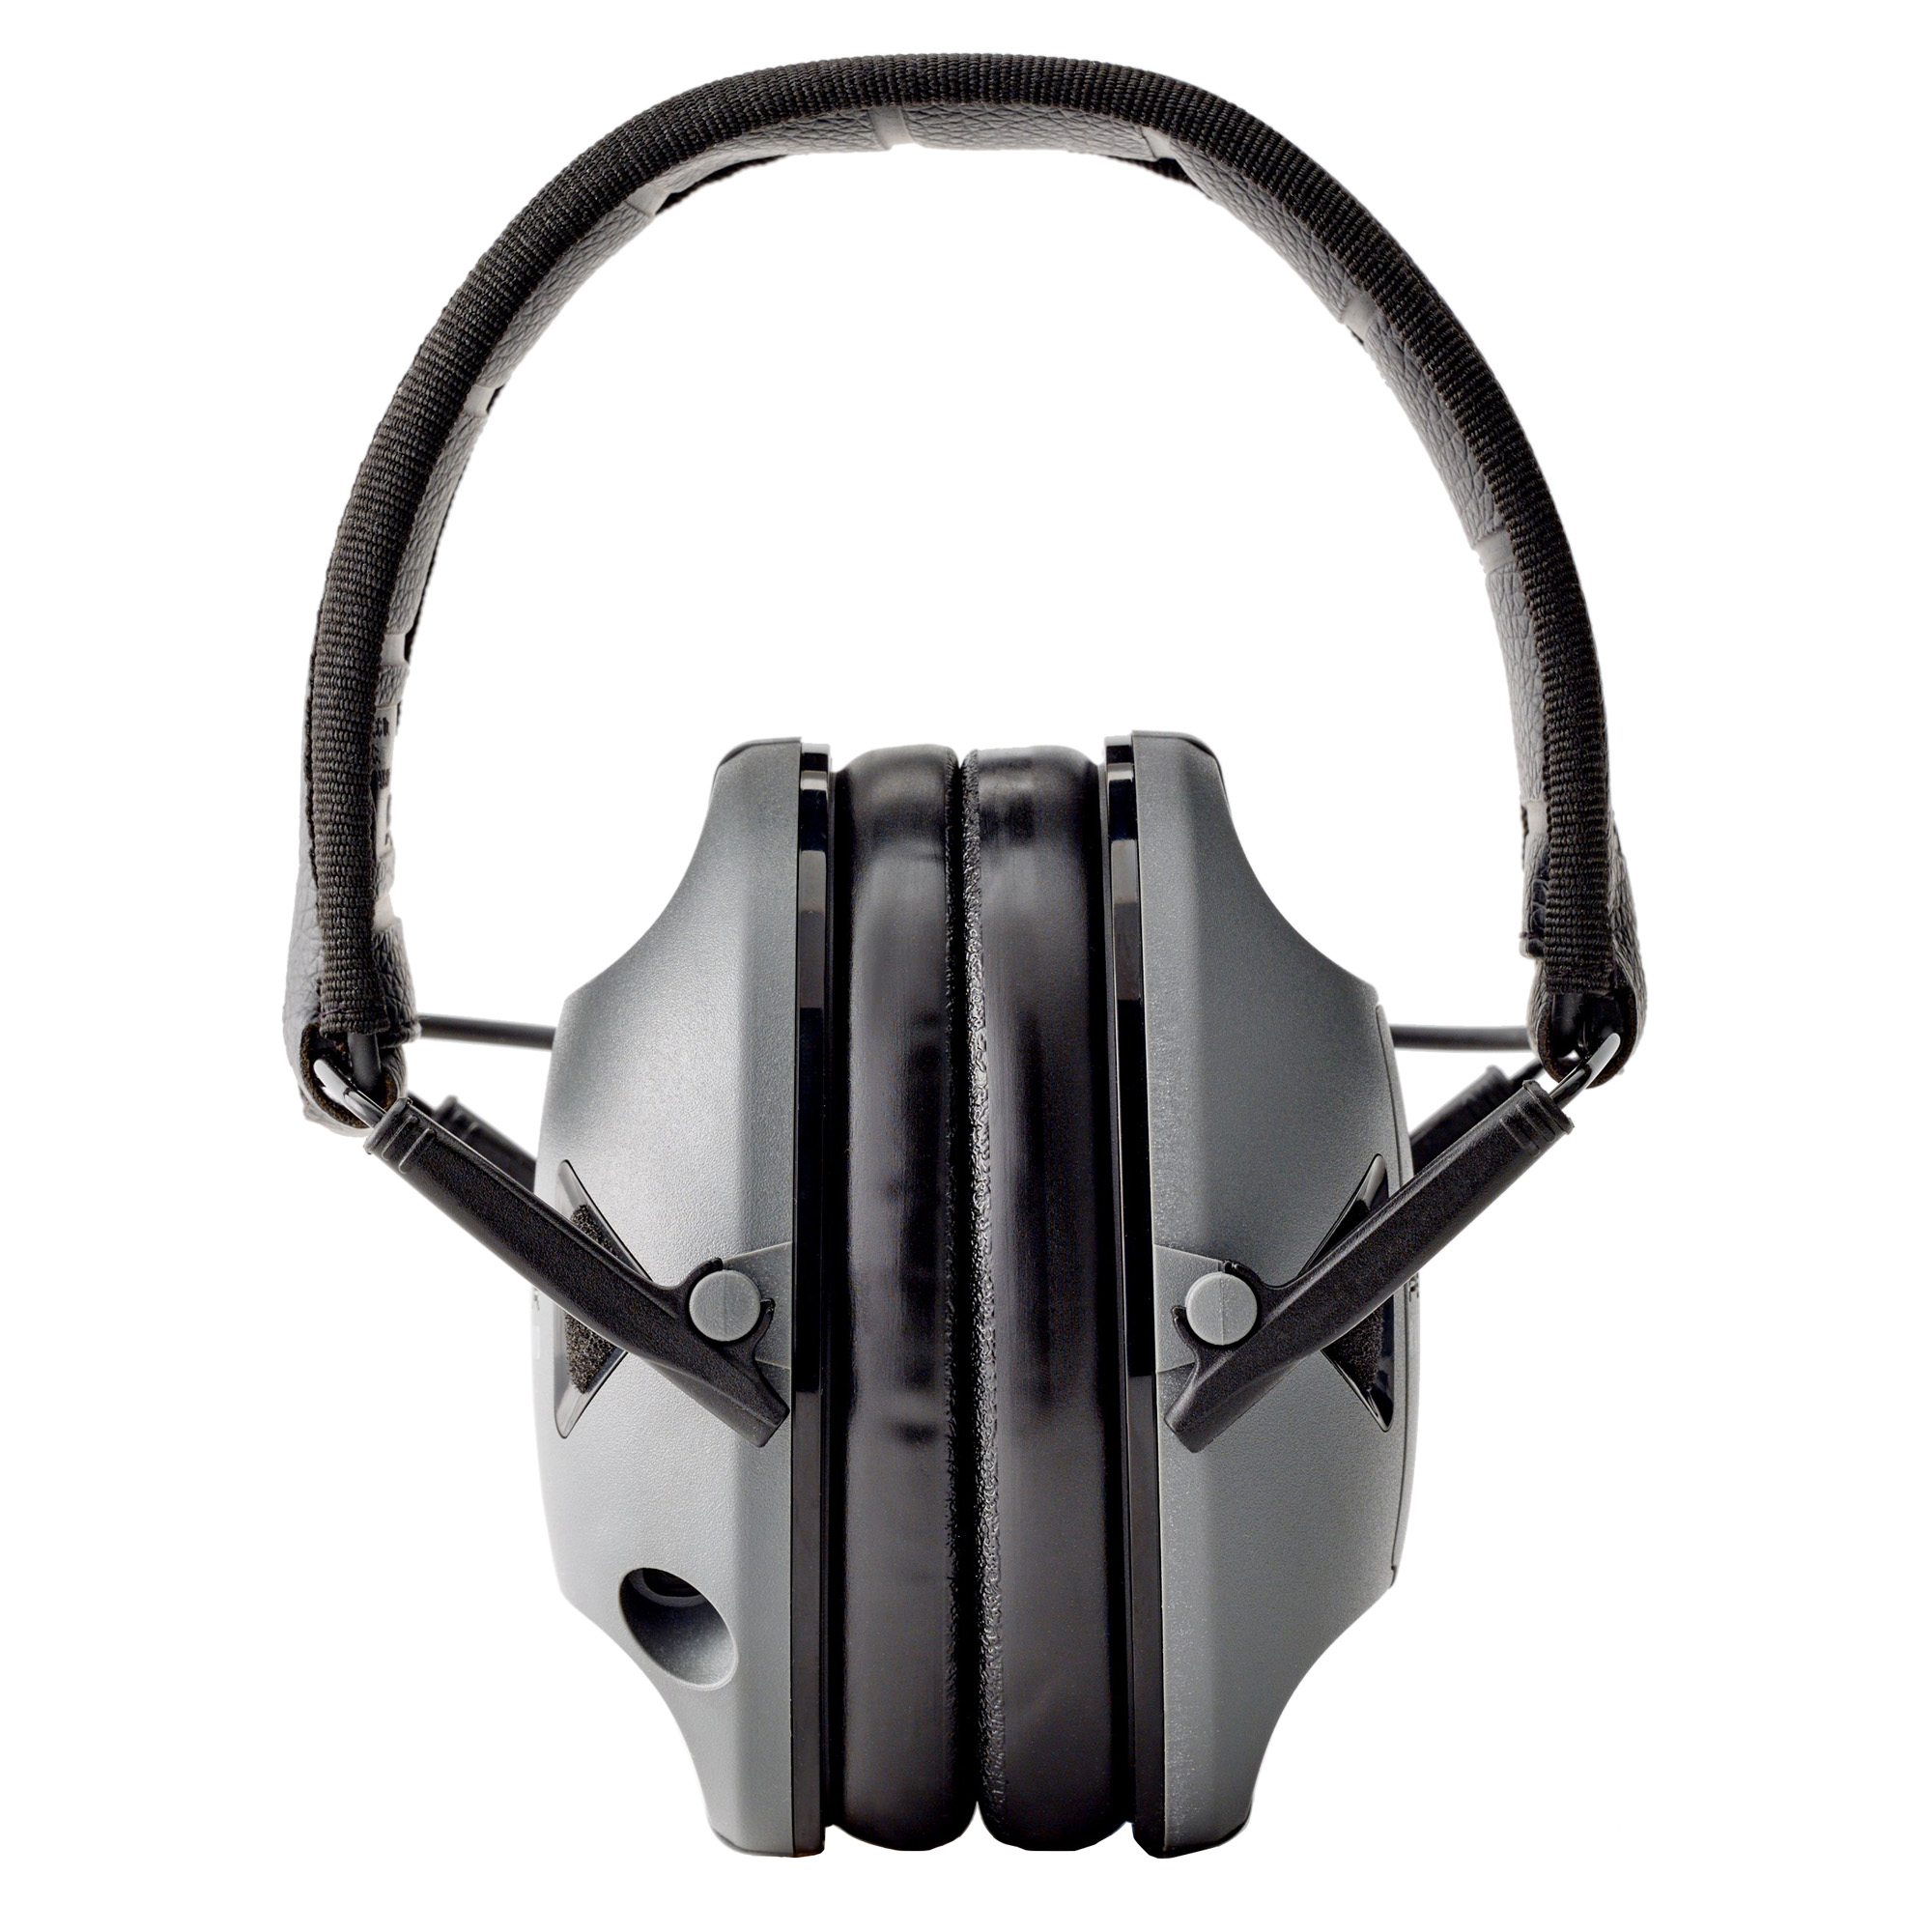 The Peltor RangeGuard Electronic Hearing Protector suppresses gunshot noise to protect hearing while amplifying voices for clear communication. Ideal for range and hunting use. It features a re-engineered headband for improved fit and comfort.